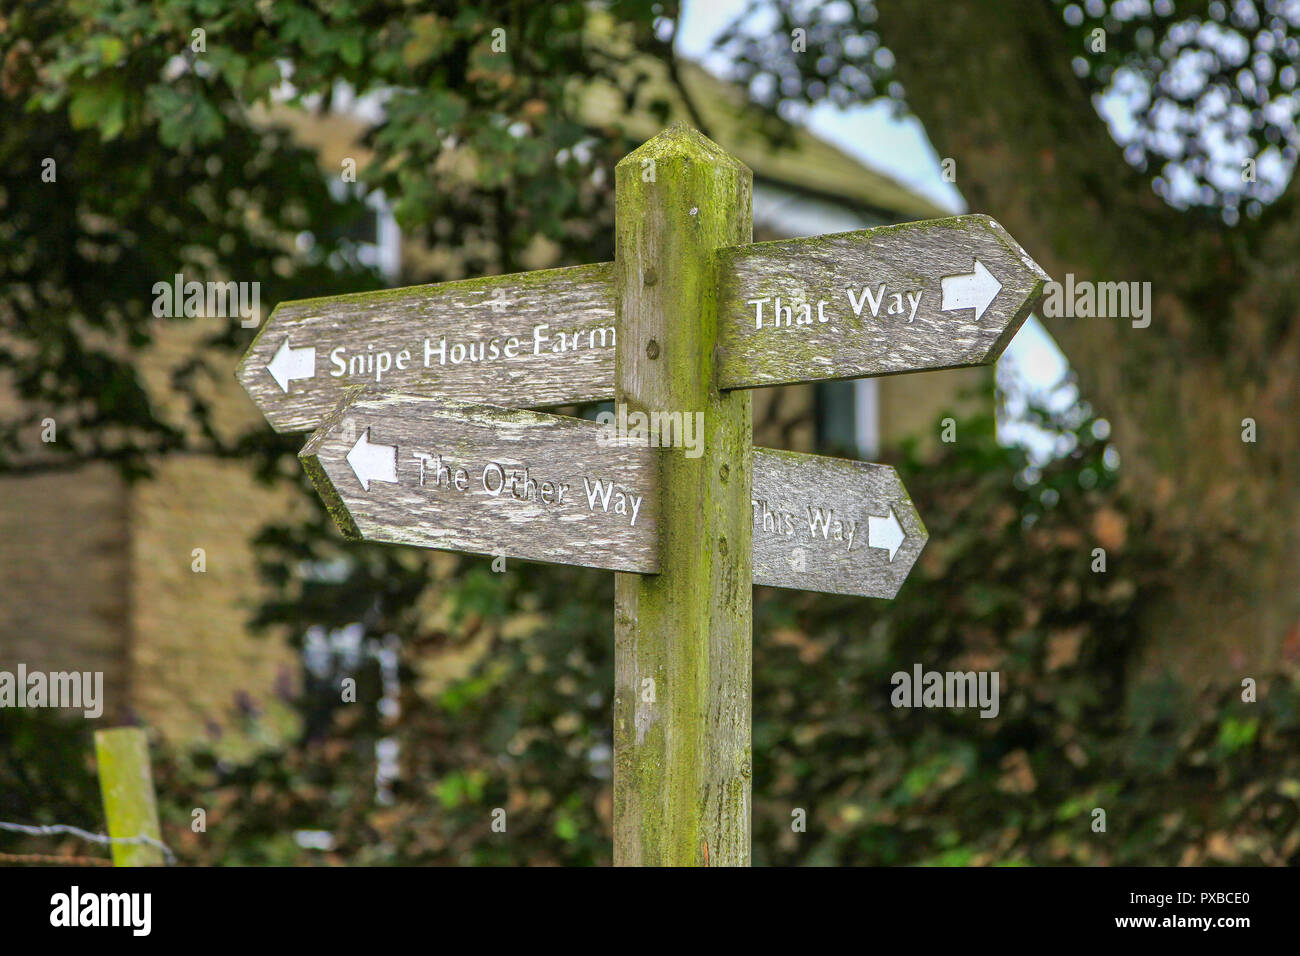 an-unusual-quirky-wooden-signpost-saying-snipe-house-farm-this-way-that-way-and-the-other-way-PXBCE0.jpg